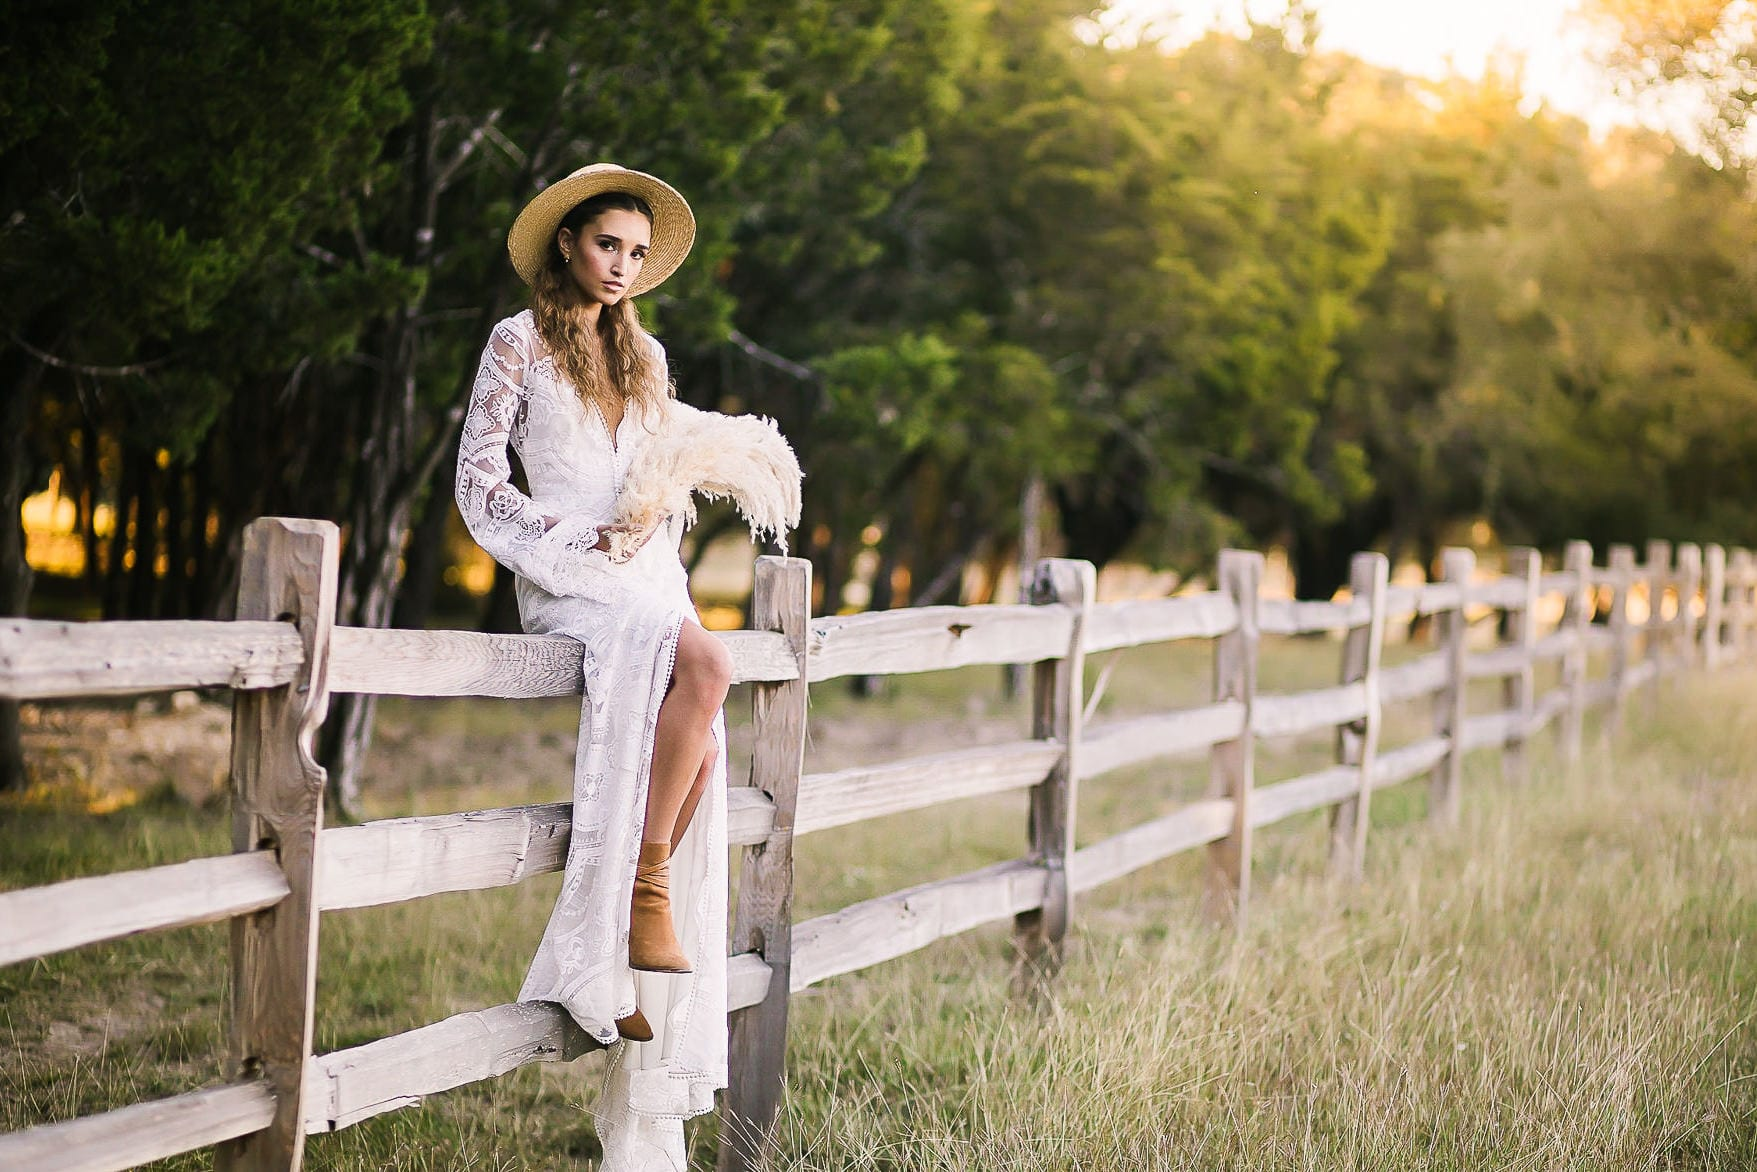 Woman in hat sits on fence